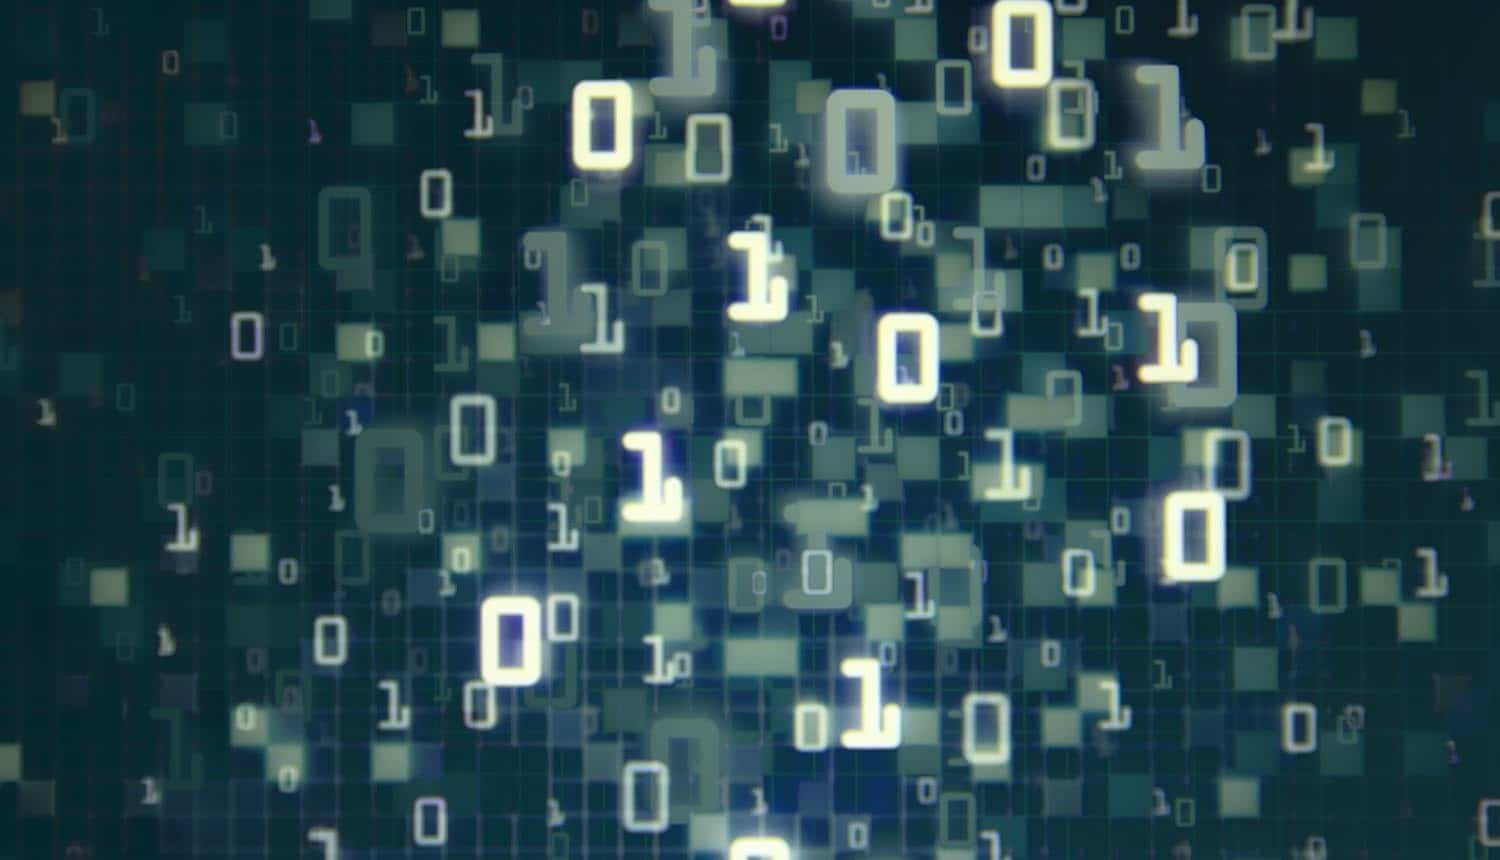 Matrix of binary numbers going in and out of focus showing the potential privacy blind spot resulting from data sharing and data inventory practices